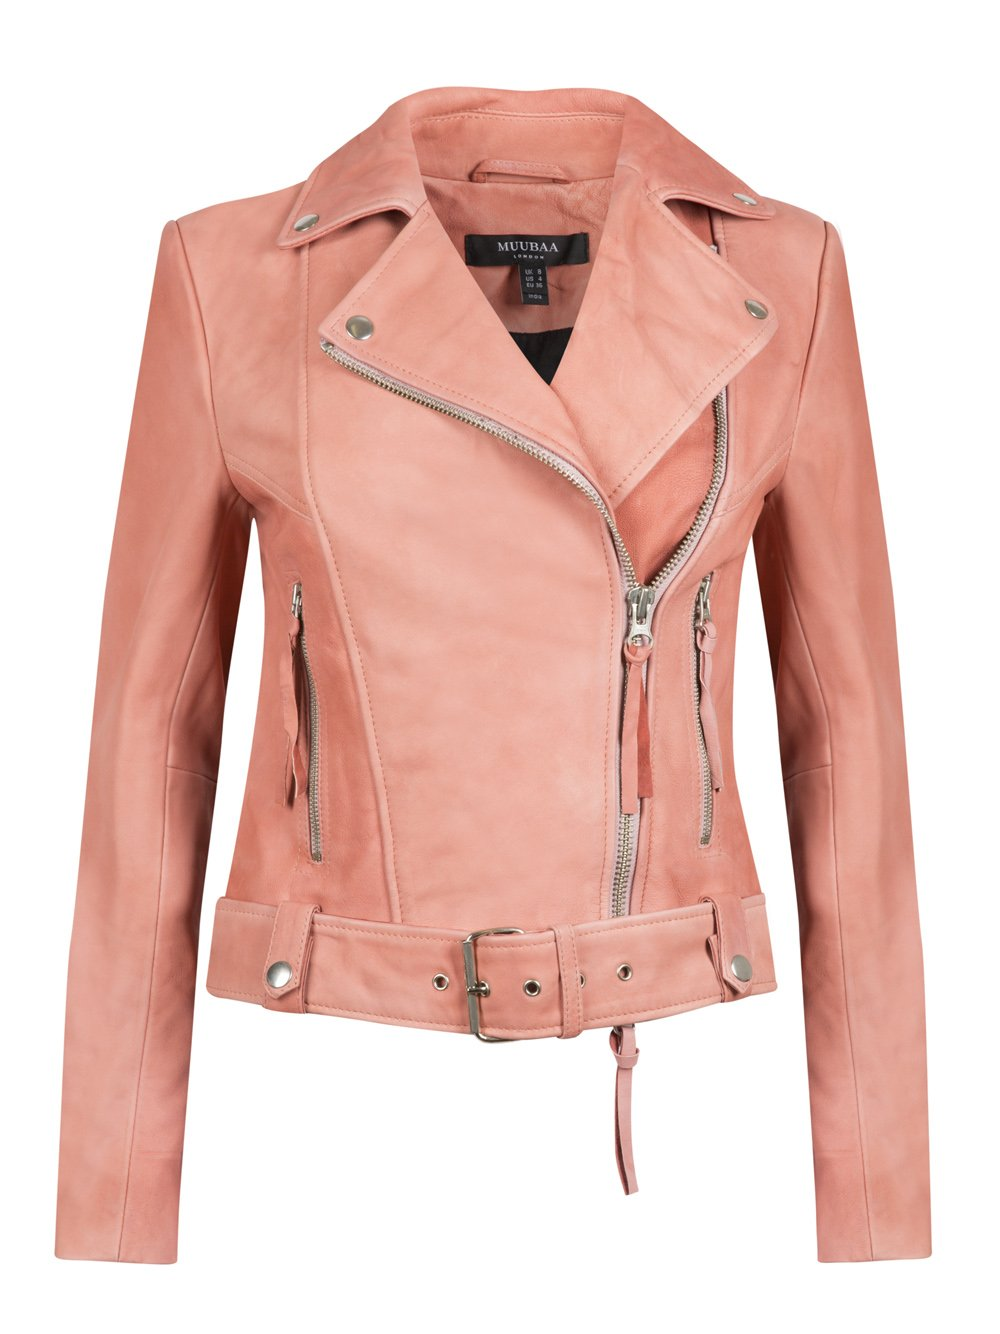 You searched for: pink leather jacket! Etsy is the home to thousands of handmade, vintage, and one-of-a-kind products and gifts related to your search. No matter what you're looking for or where you are in the world, our global marketplace of sellers can help you find unique and affordable options. Let's get started!